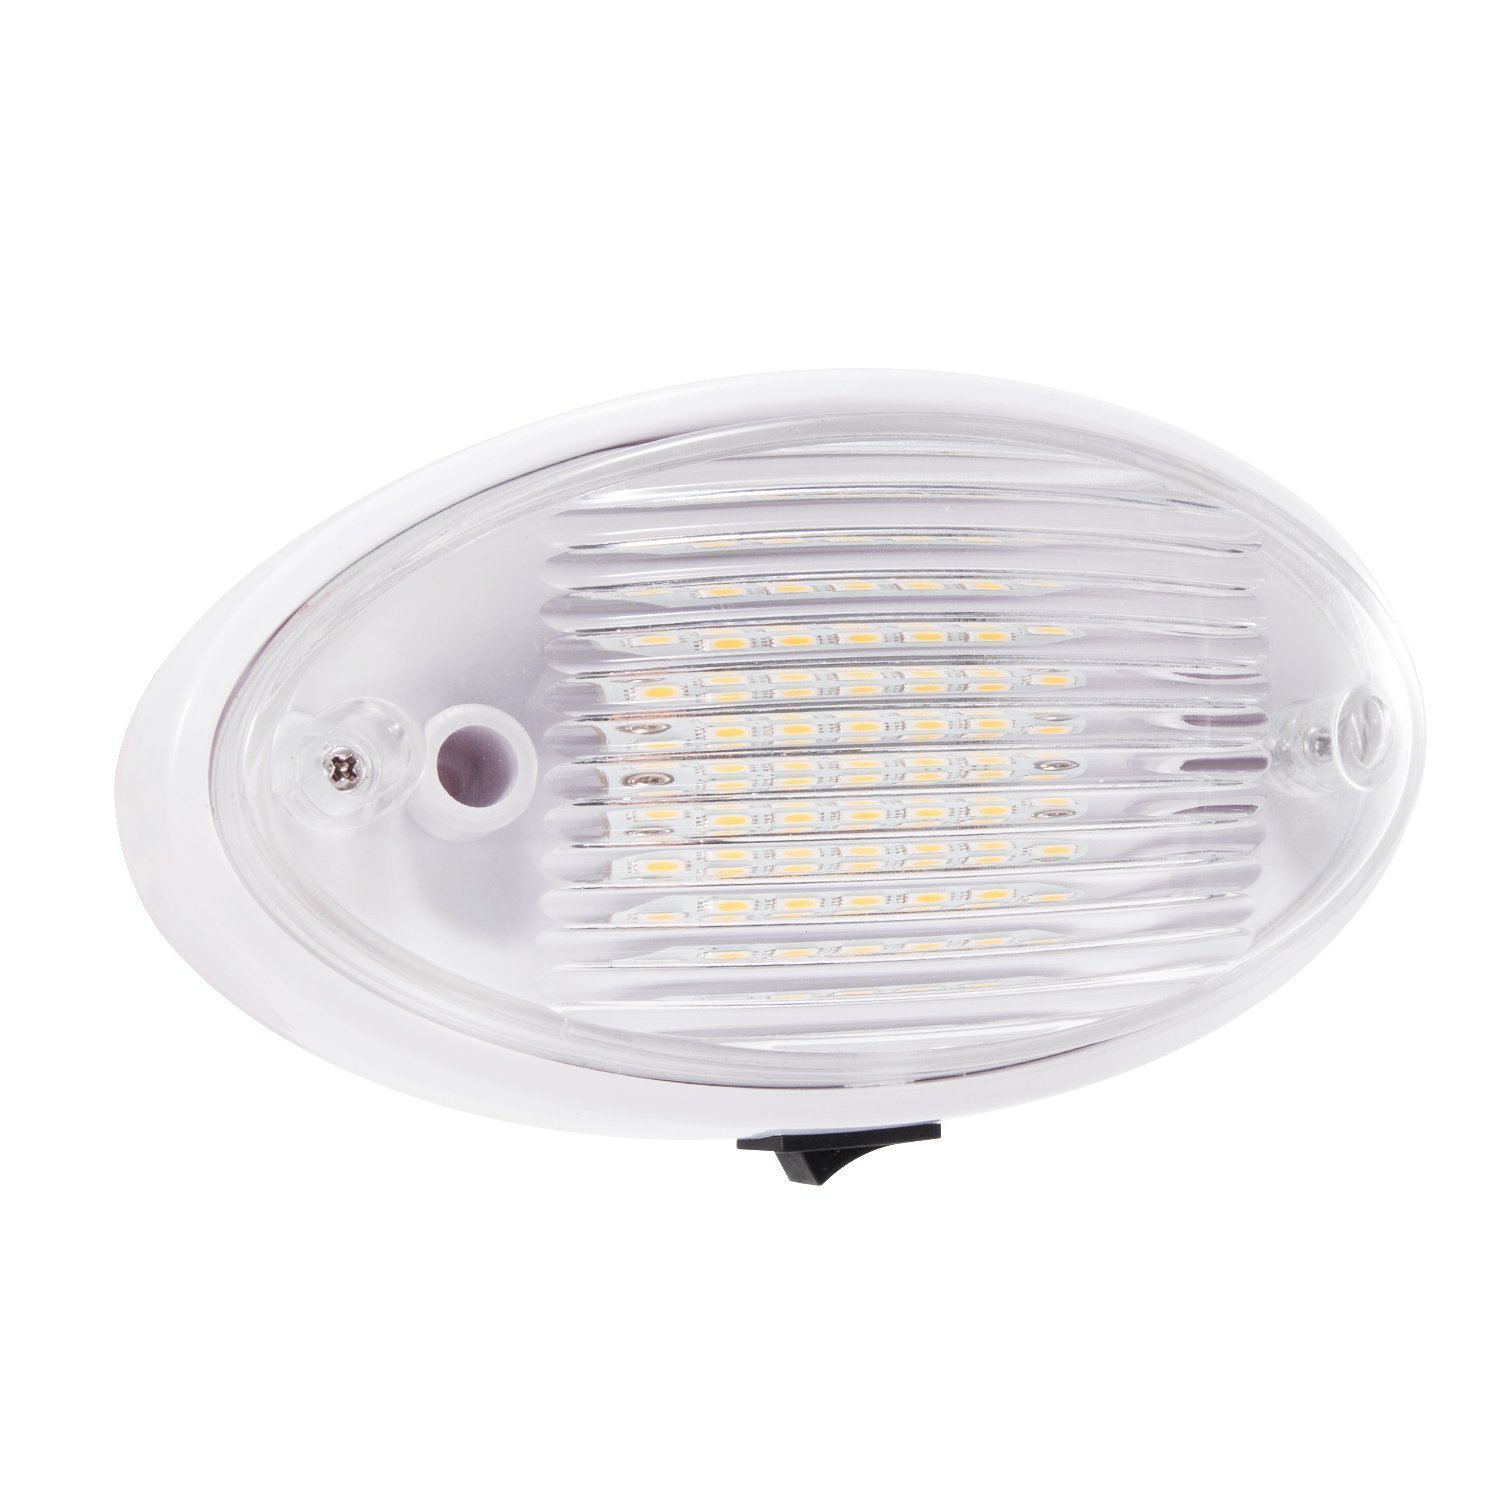 Amazon kohree led ceiling porch light fixture 12v rv interior amazon kohree led ceiling porch light fixture 12v rv interior and exterior lighting for trailercamperboat with onoff switch and removable lens arubaitofo Gallery